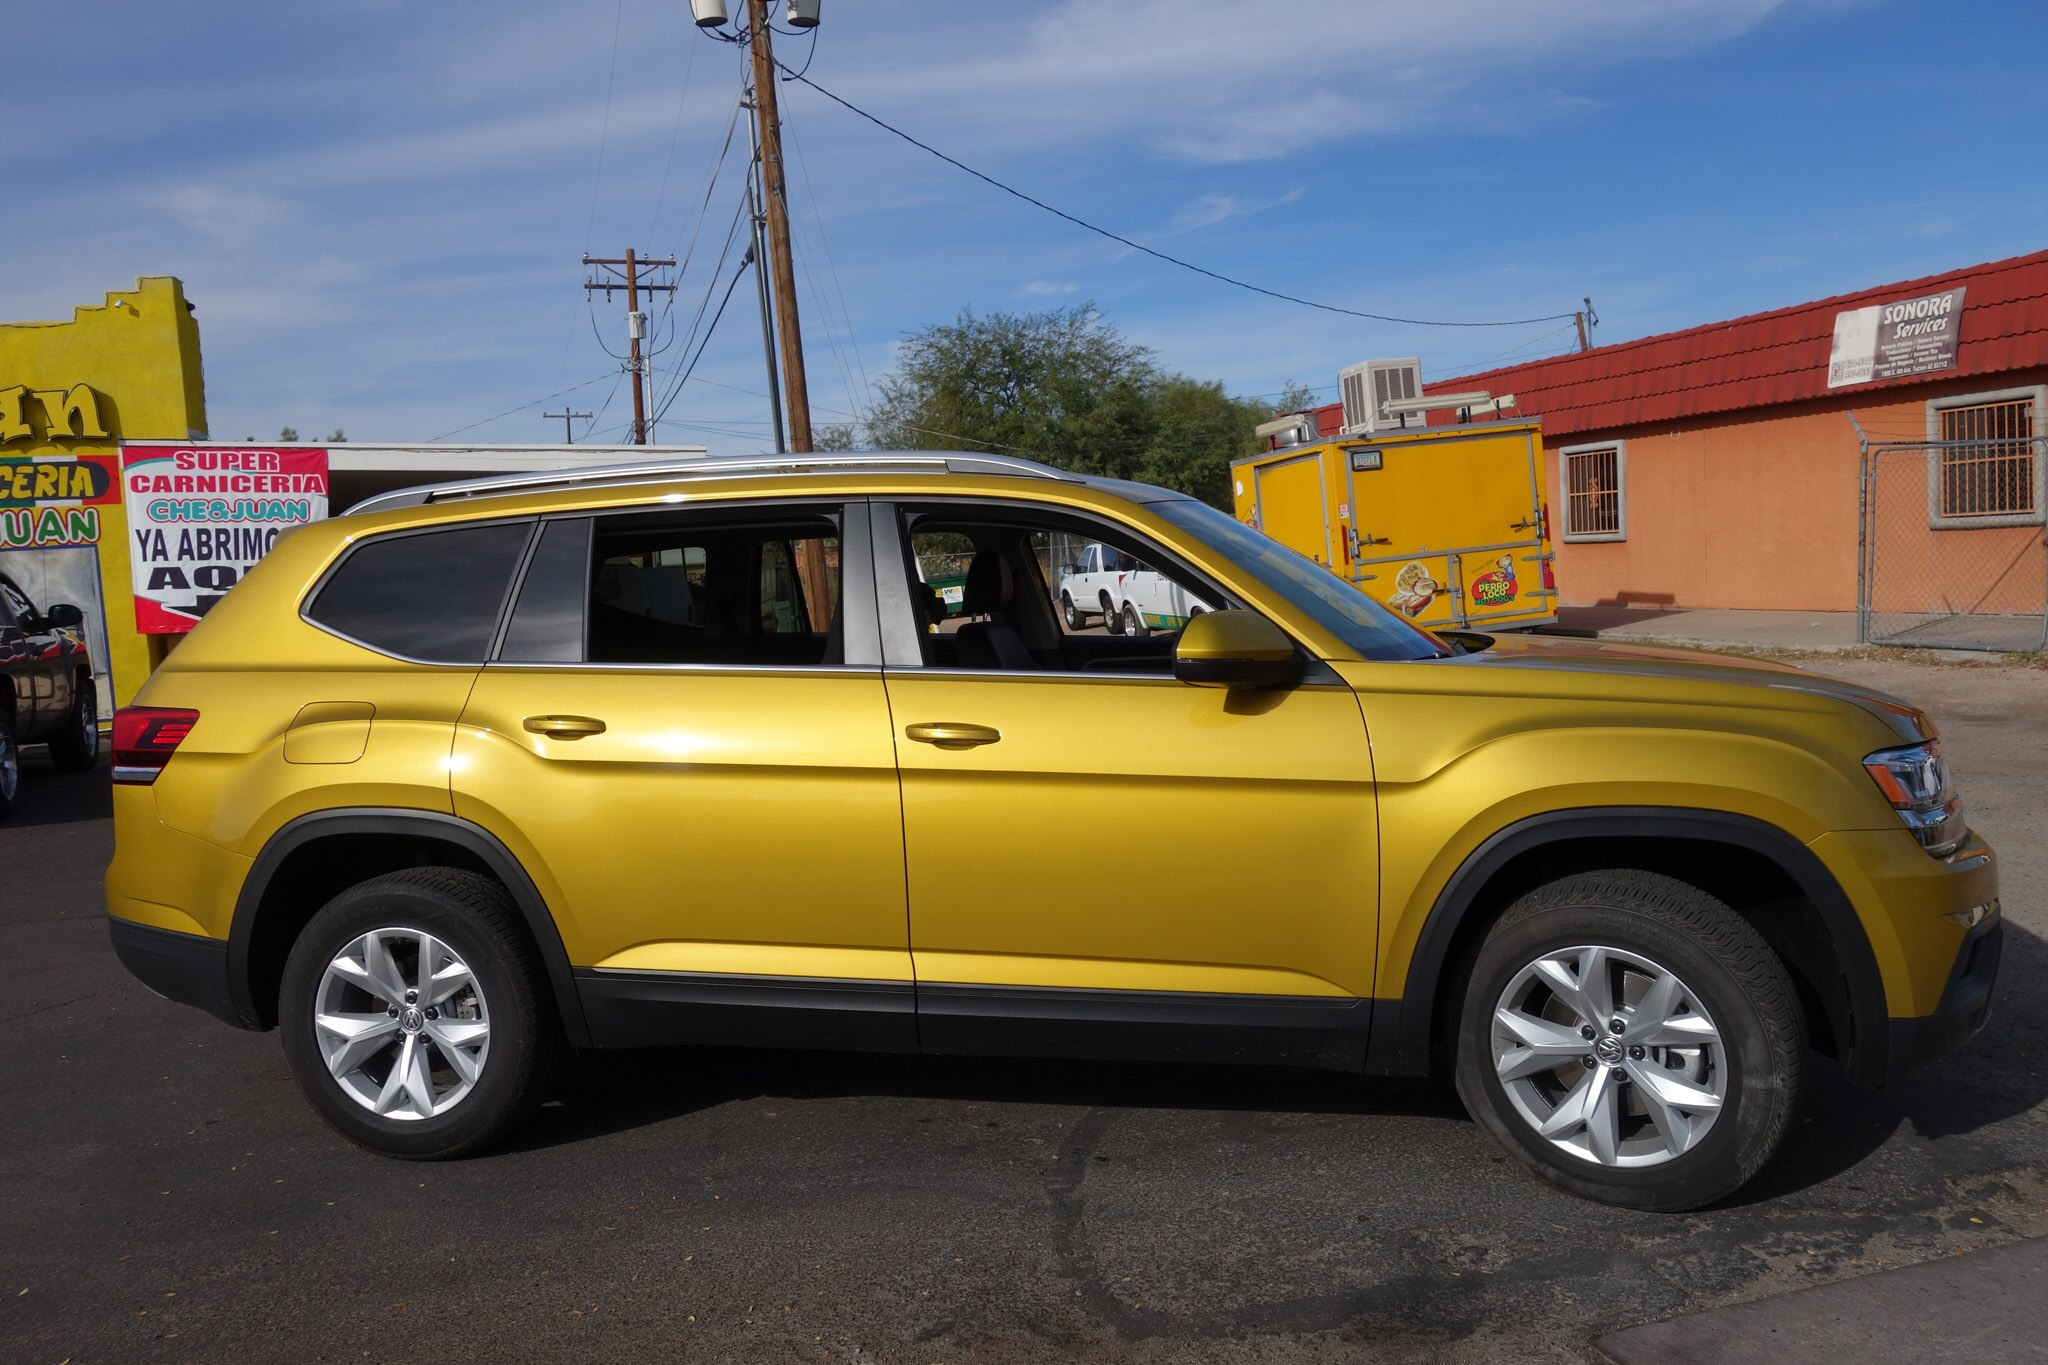 UPDATE: Volkswagen's 5-seat SUV named Atlas, variant of larger SUV built in Chattanooga